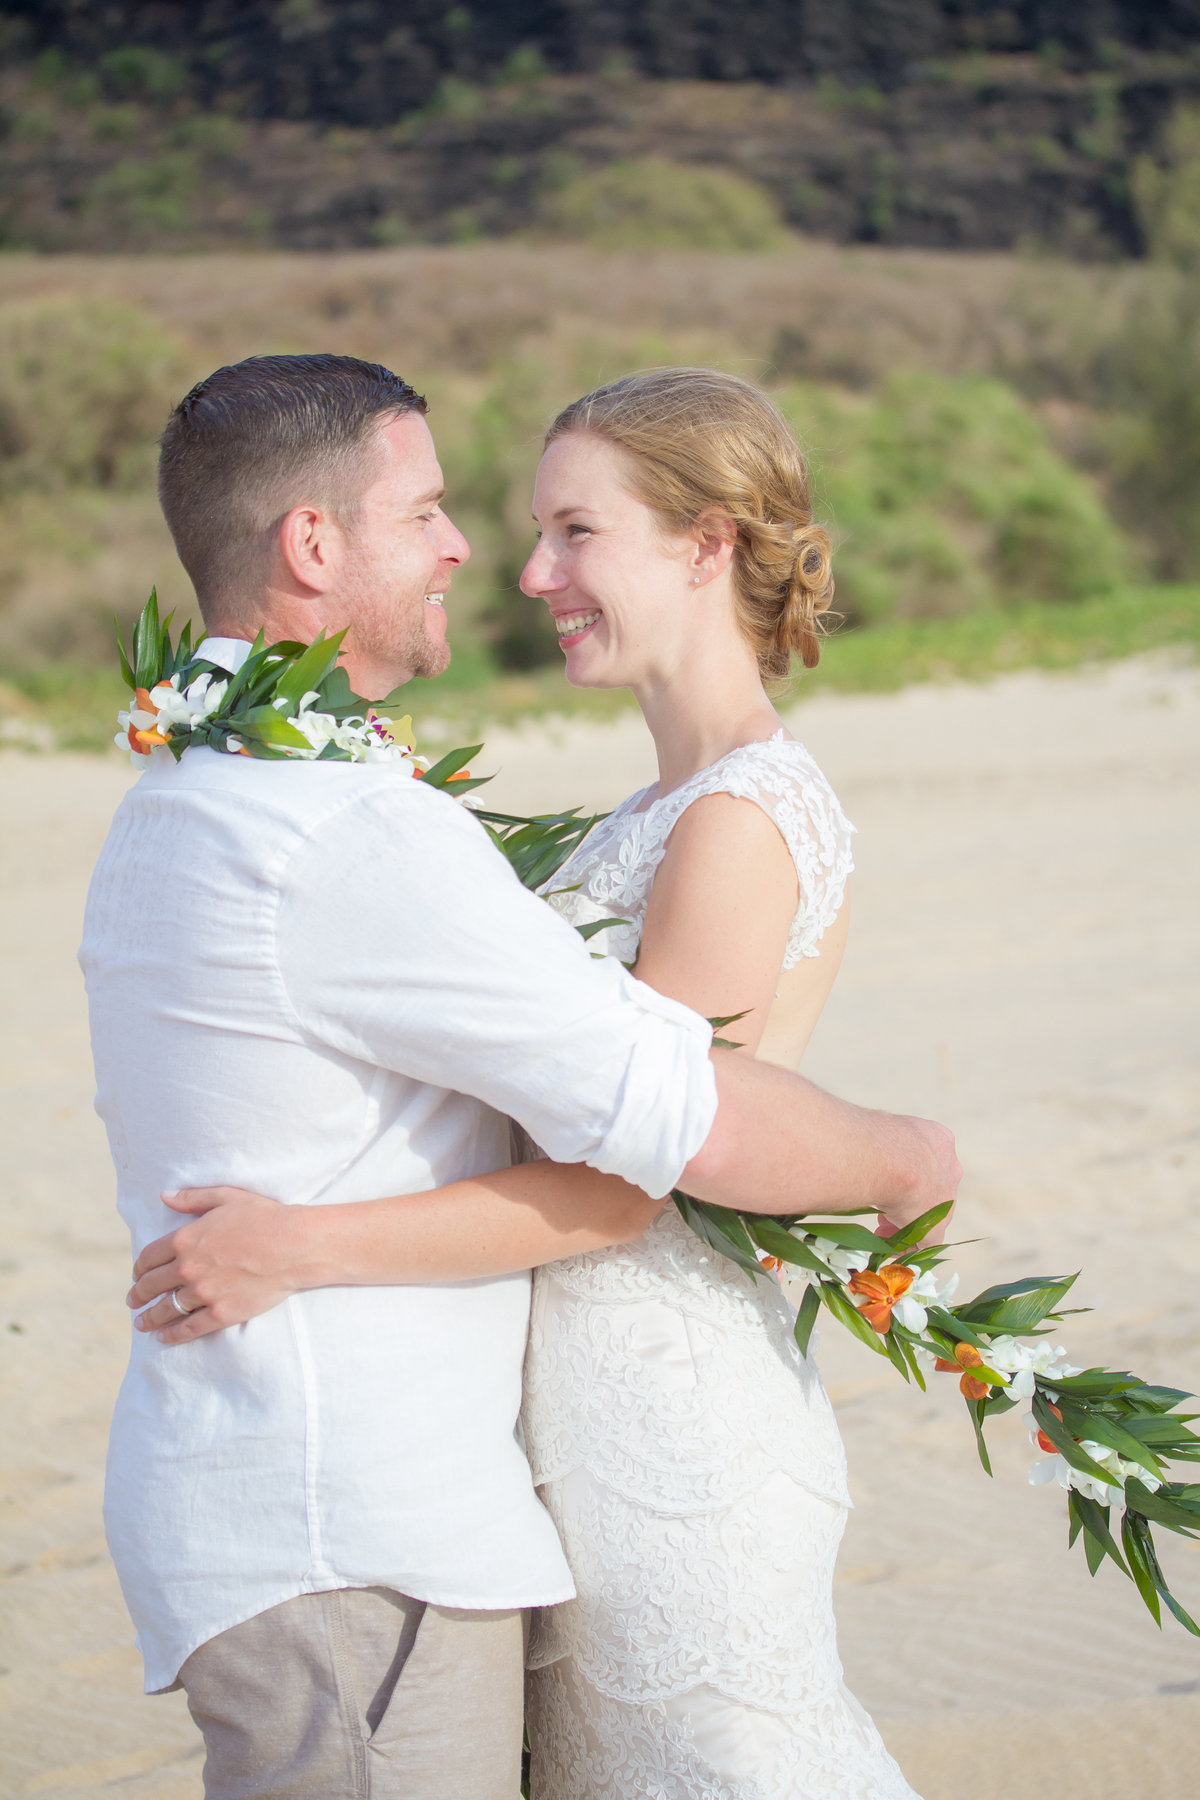 Bride and groom embrace during beach wedding in Kauai.